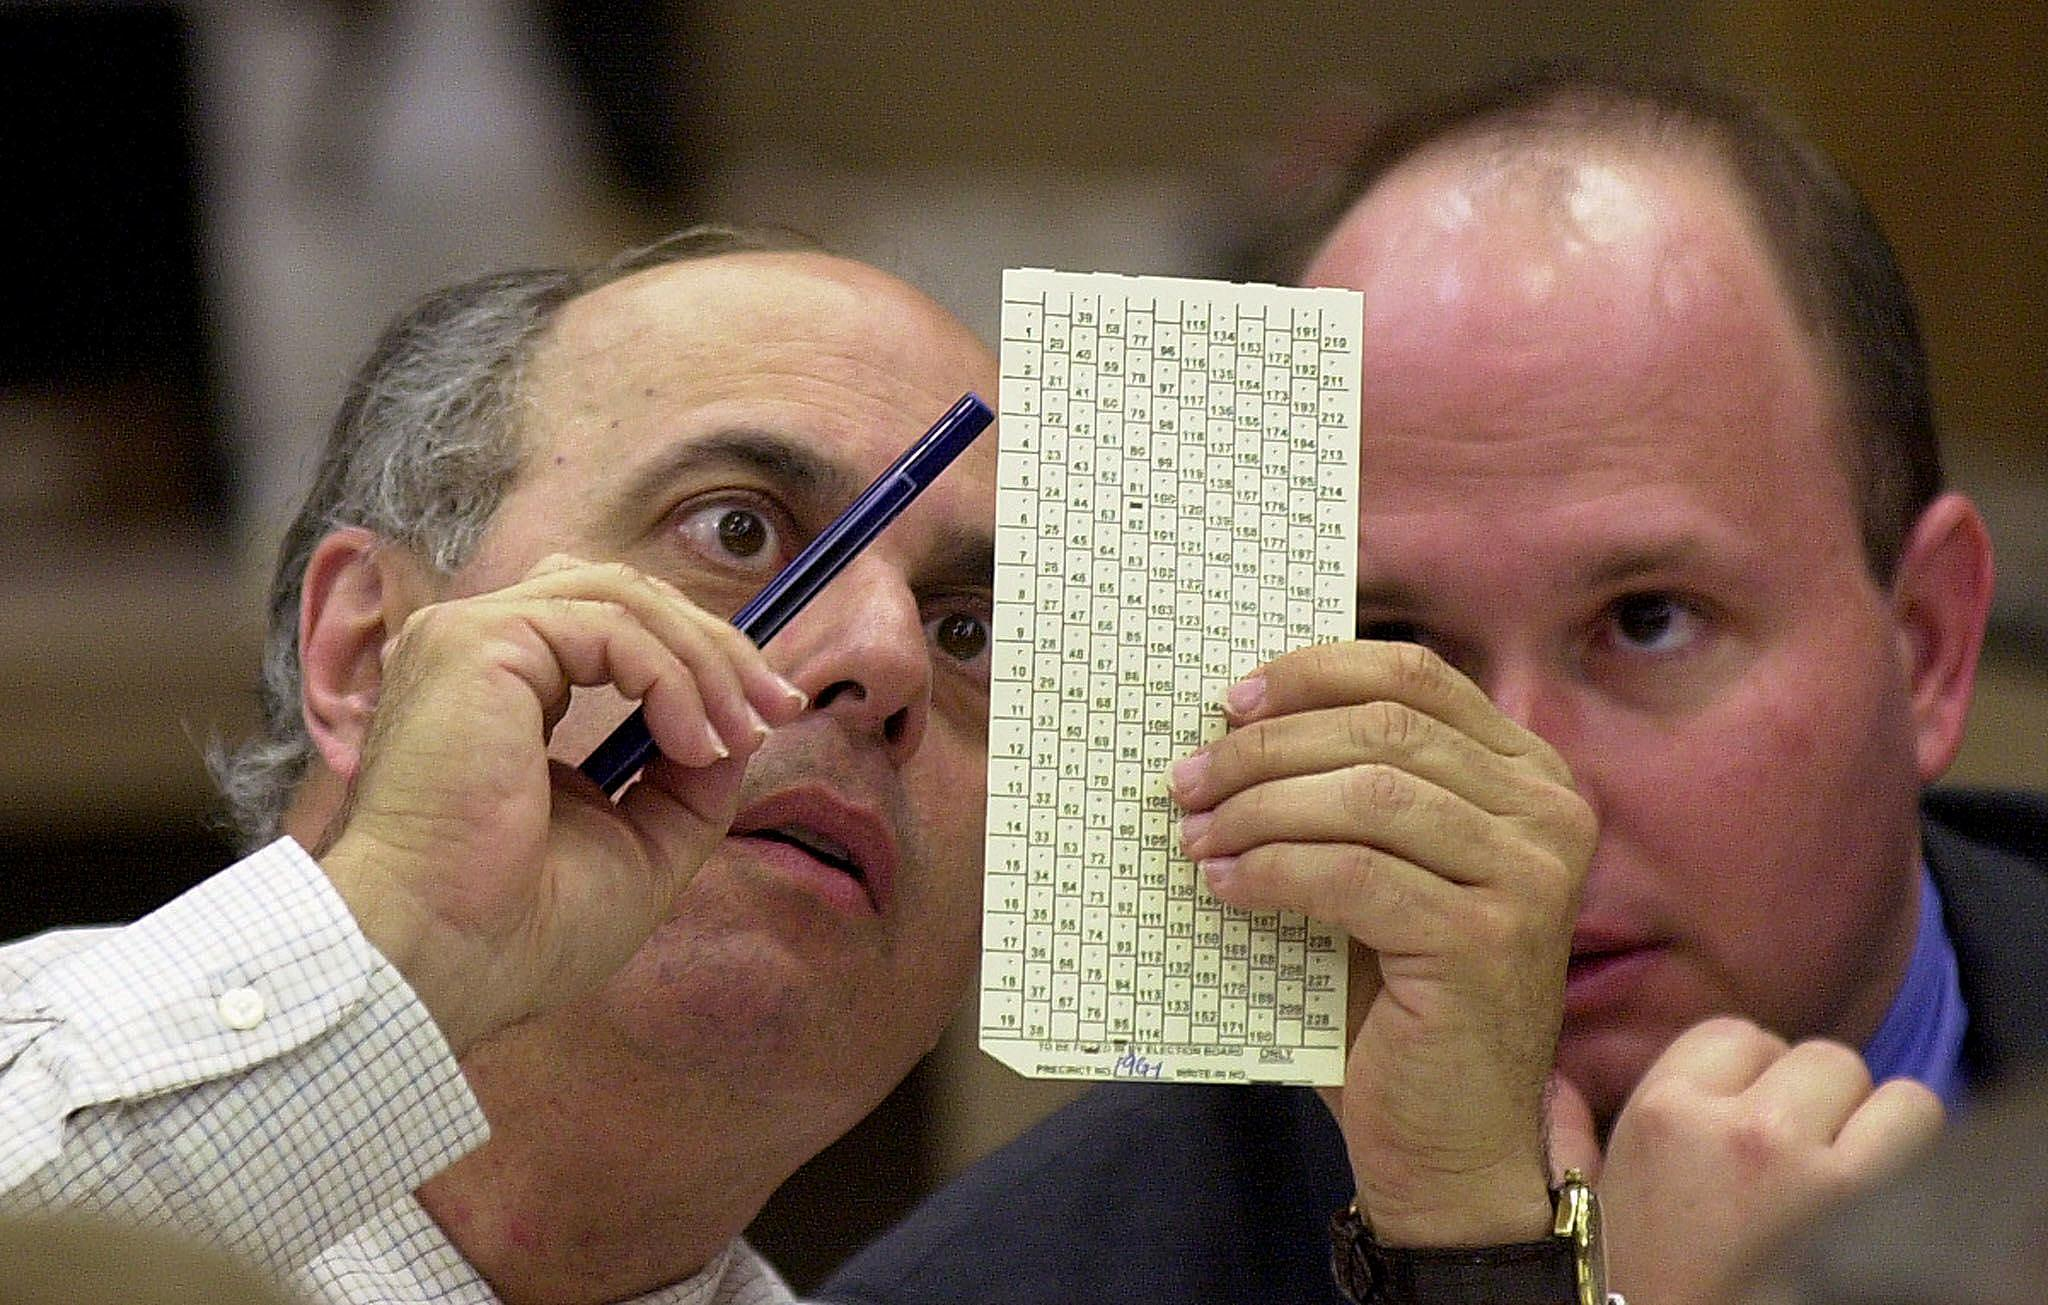 Broward County Canvassing Board Member Judge Robert Rosenberg (L) shows a ballot to an unidentified observer at the Broward County Courthouse in Ft. Lauderdale, Florida in November 2000. This is why we can't have nice things.